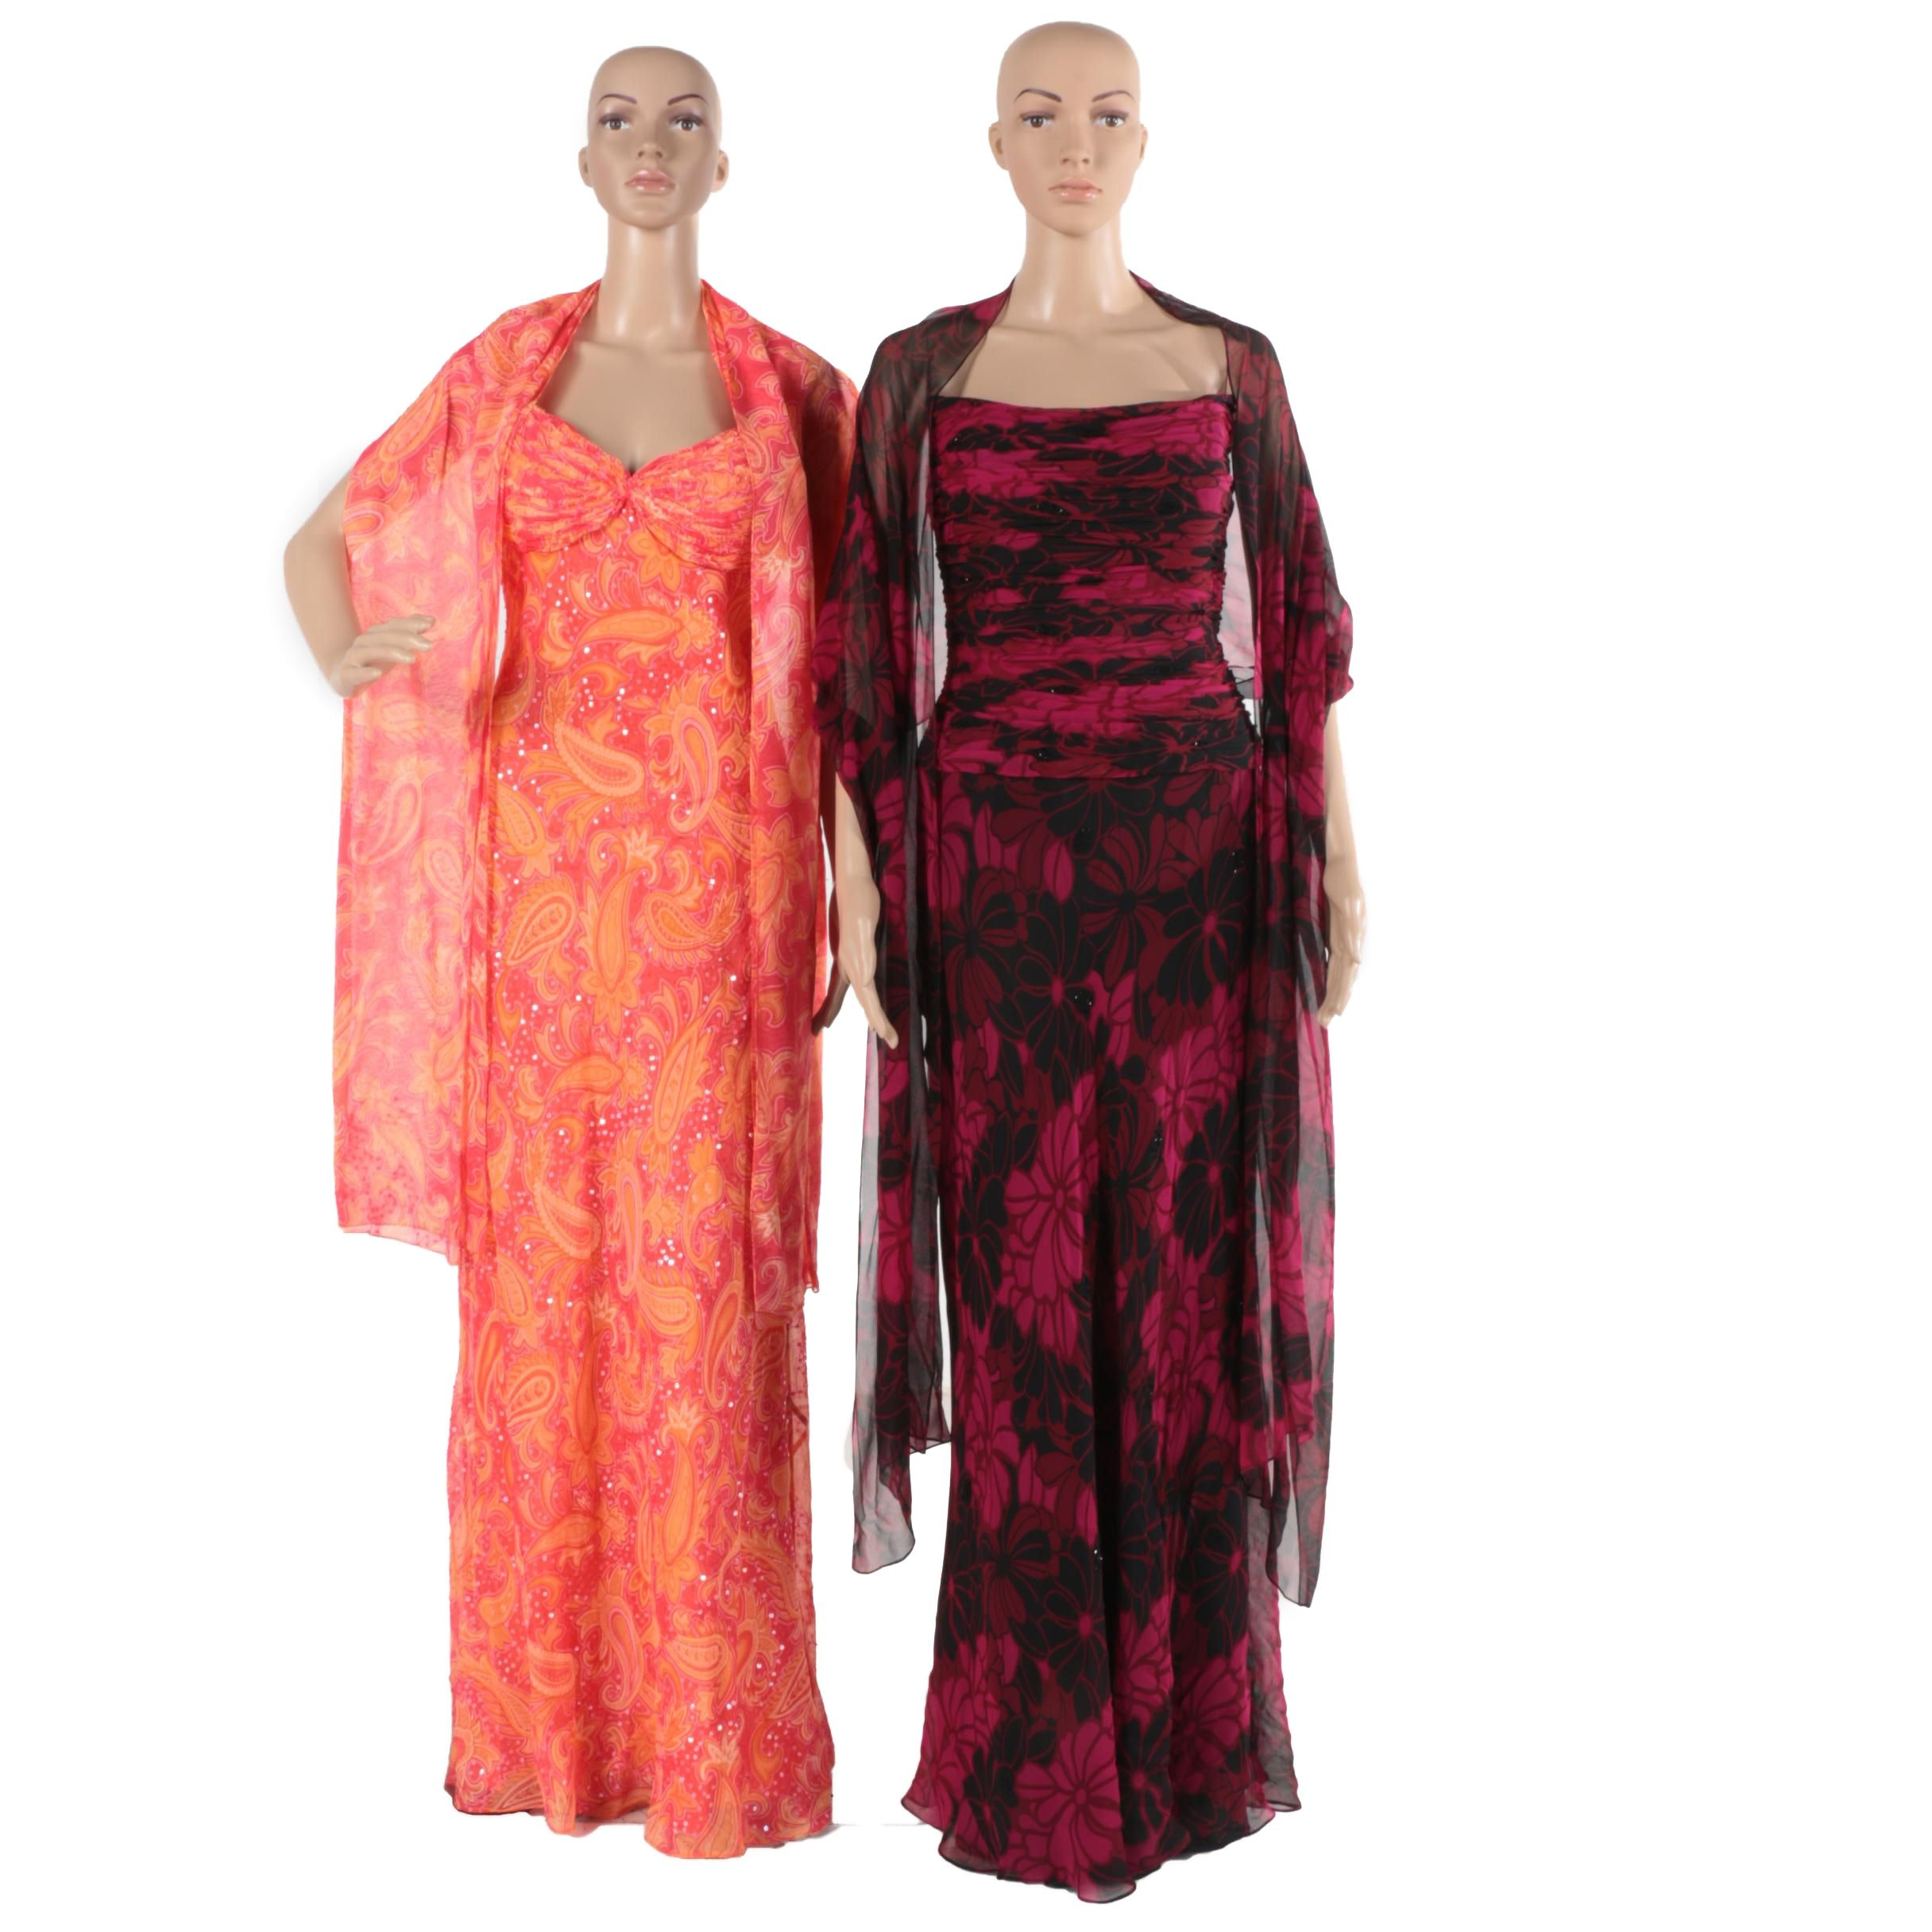 Terani Couture and Zola Ice Silk Gowns with Shawls